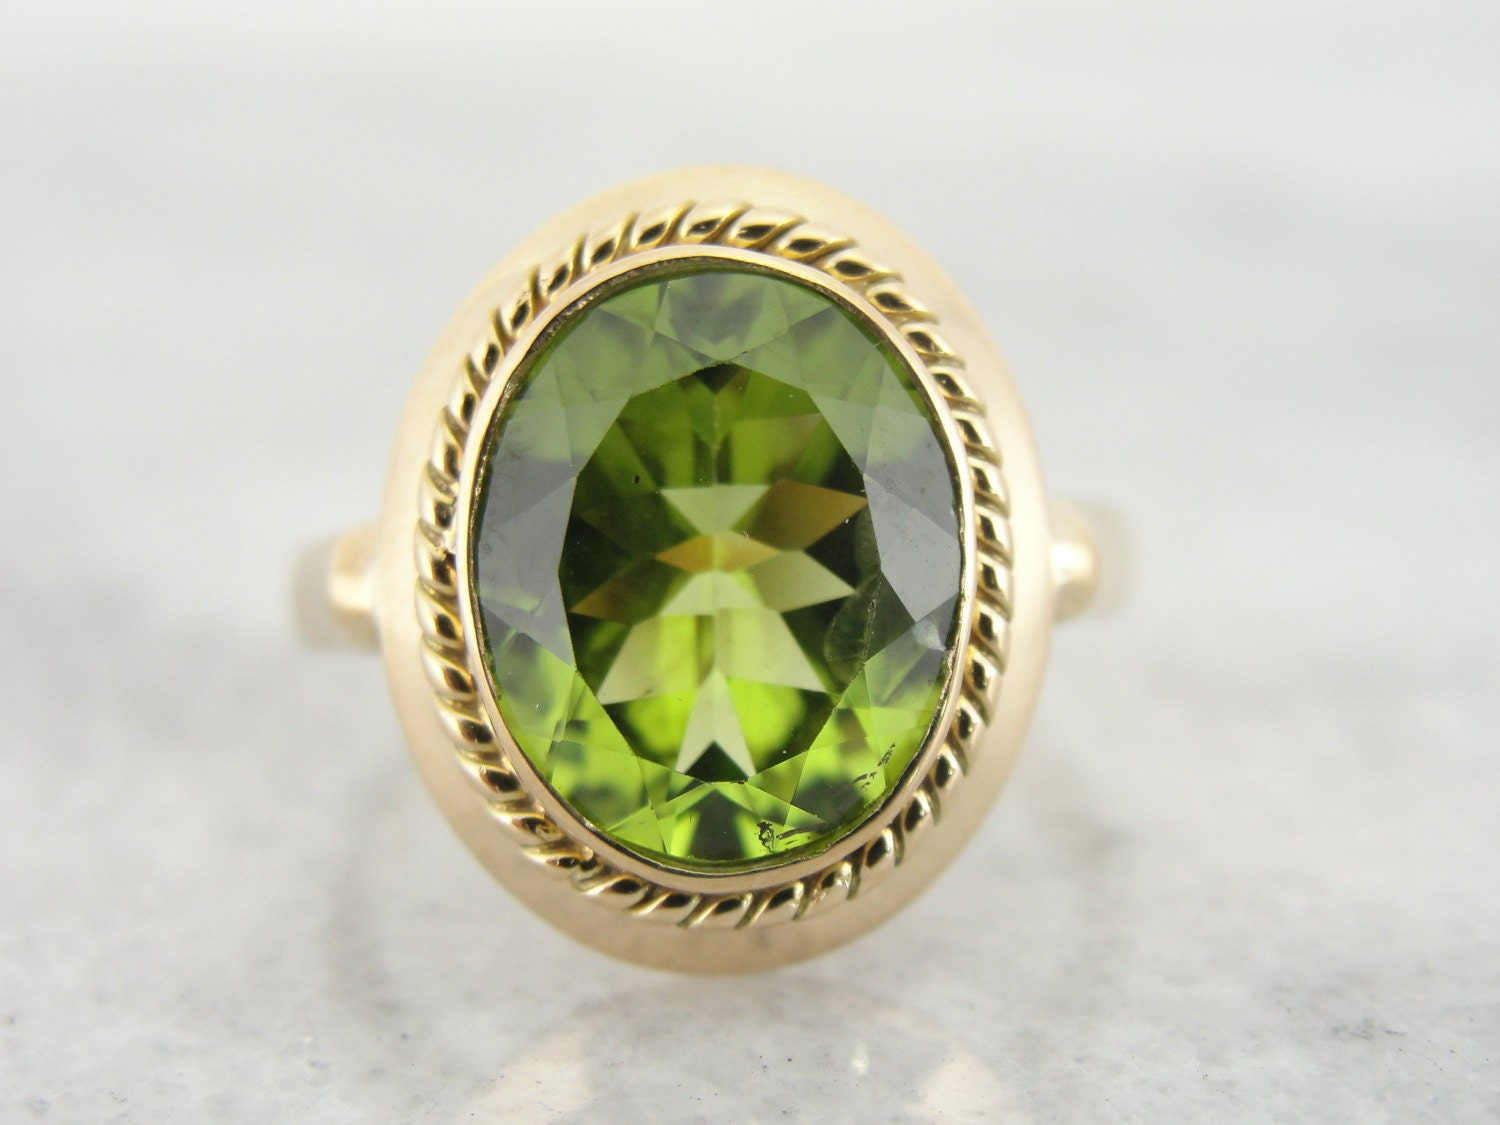 antique ring with peridot center vp29dm